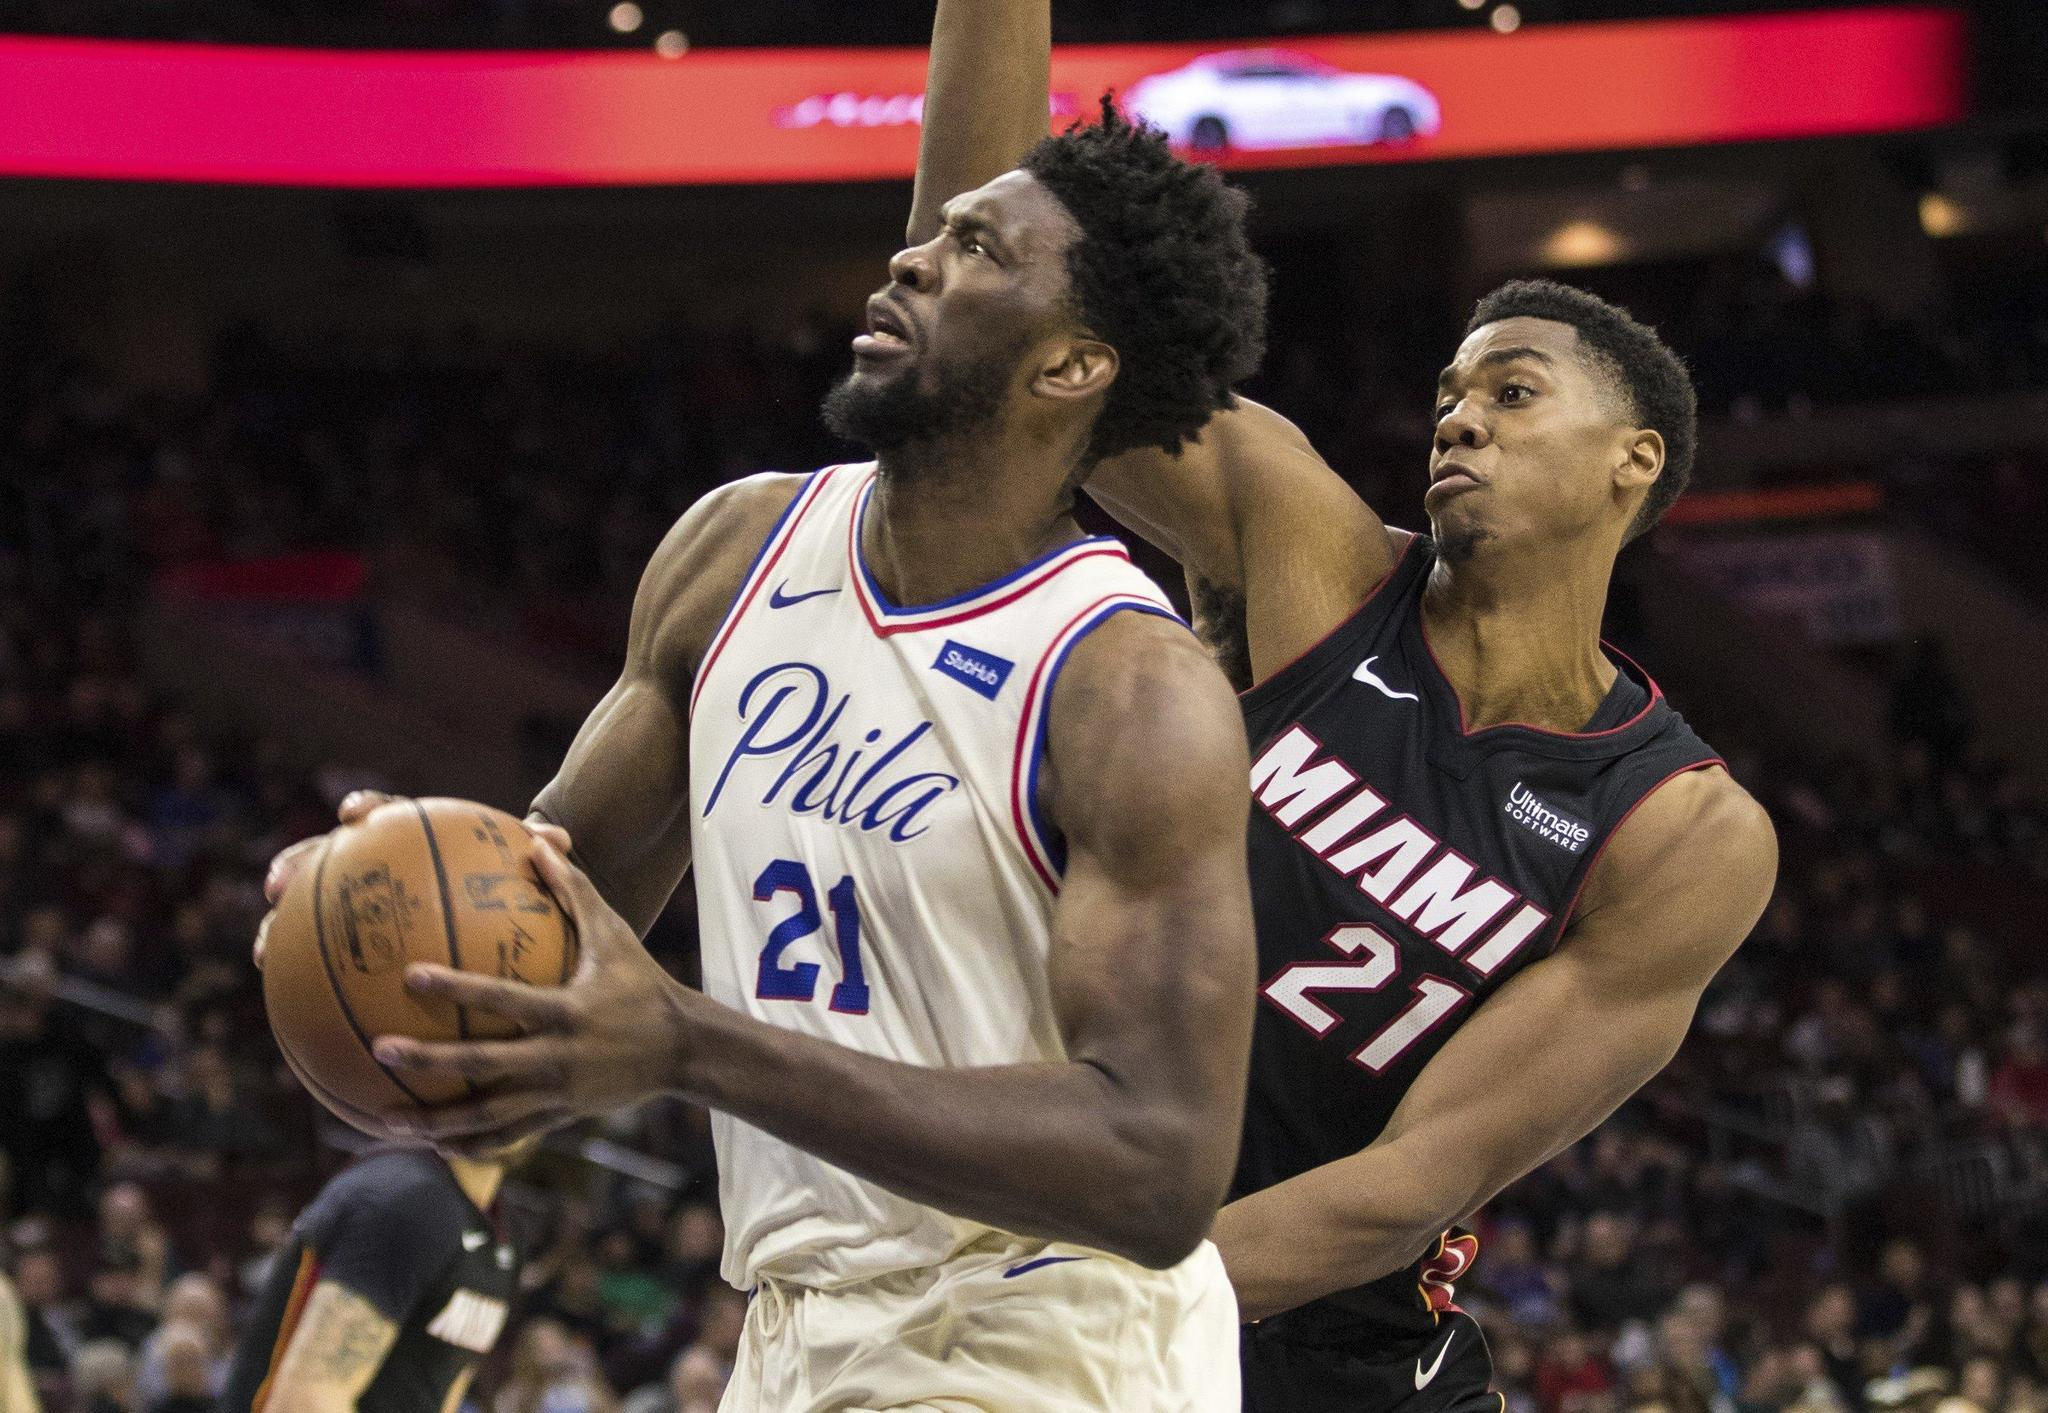 eae54fdc803dd 76ers get in on Philly s Super Bowl bash with win over Heat - The Morning  Call